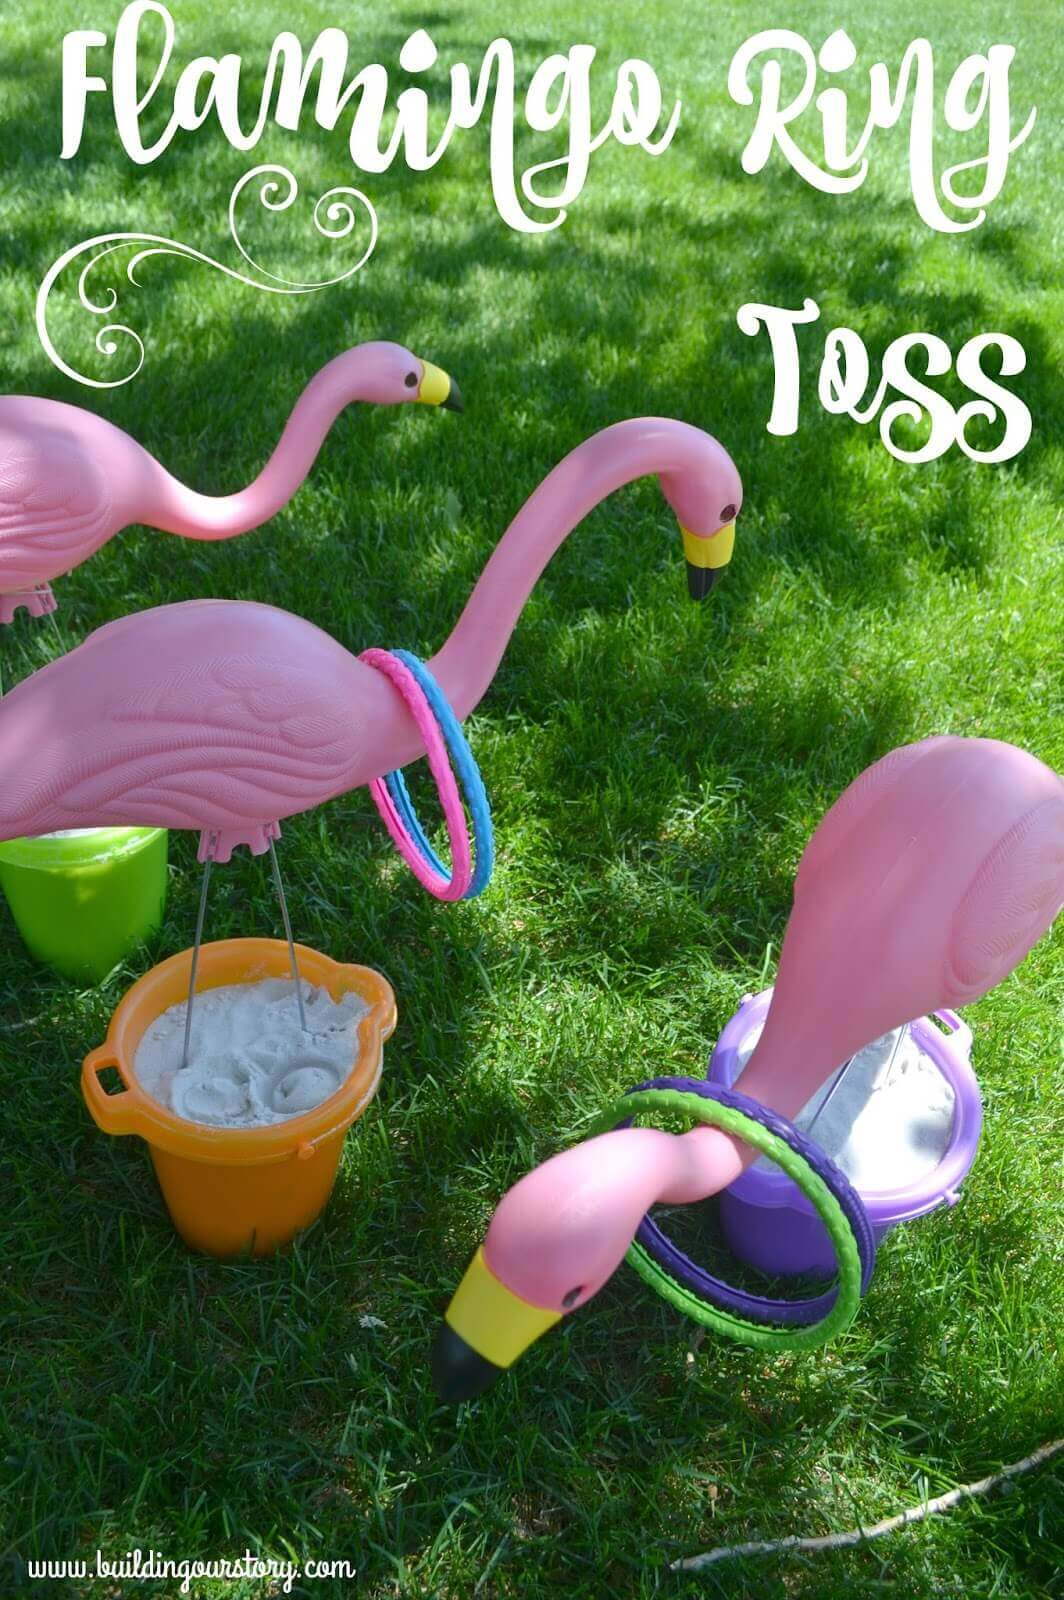 Creative Flamingo Lawn Ornament Ring Toss